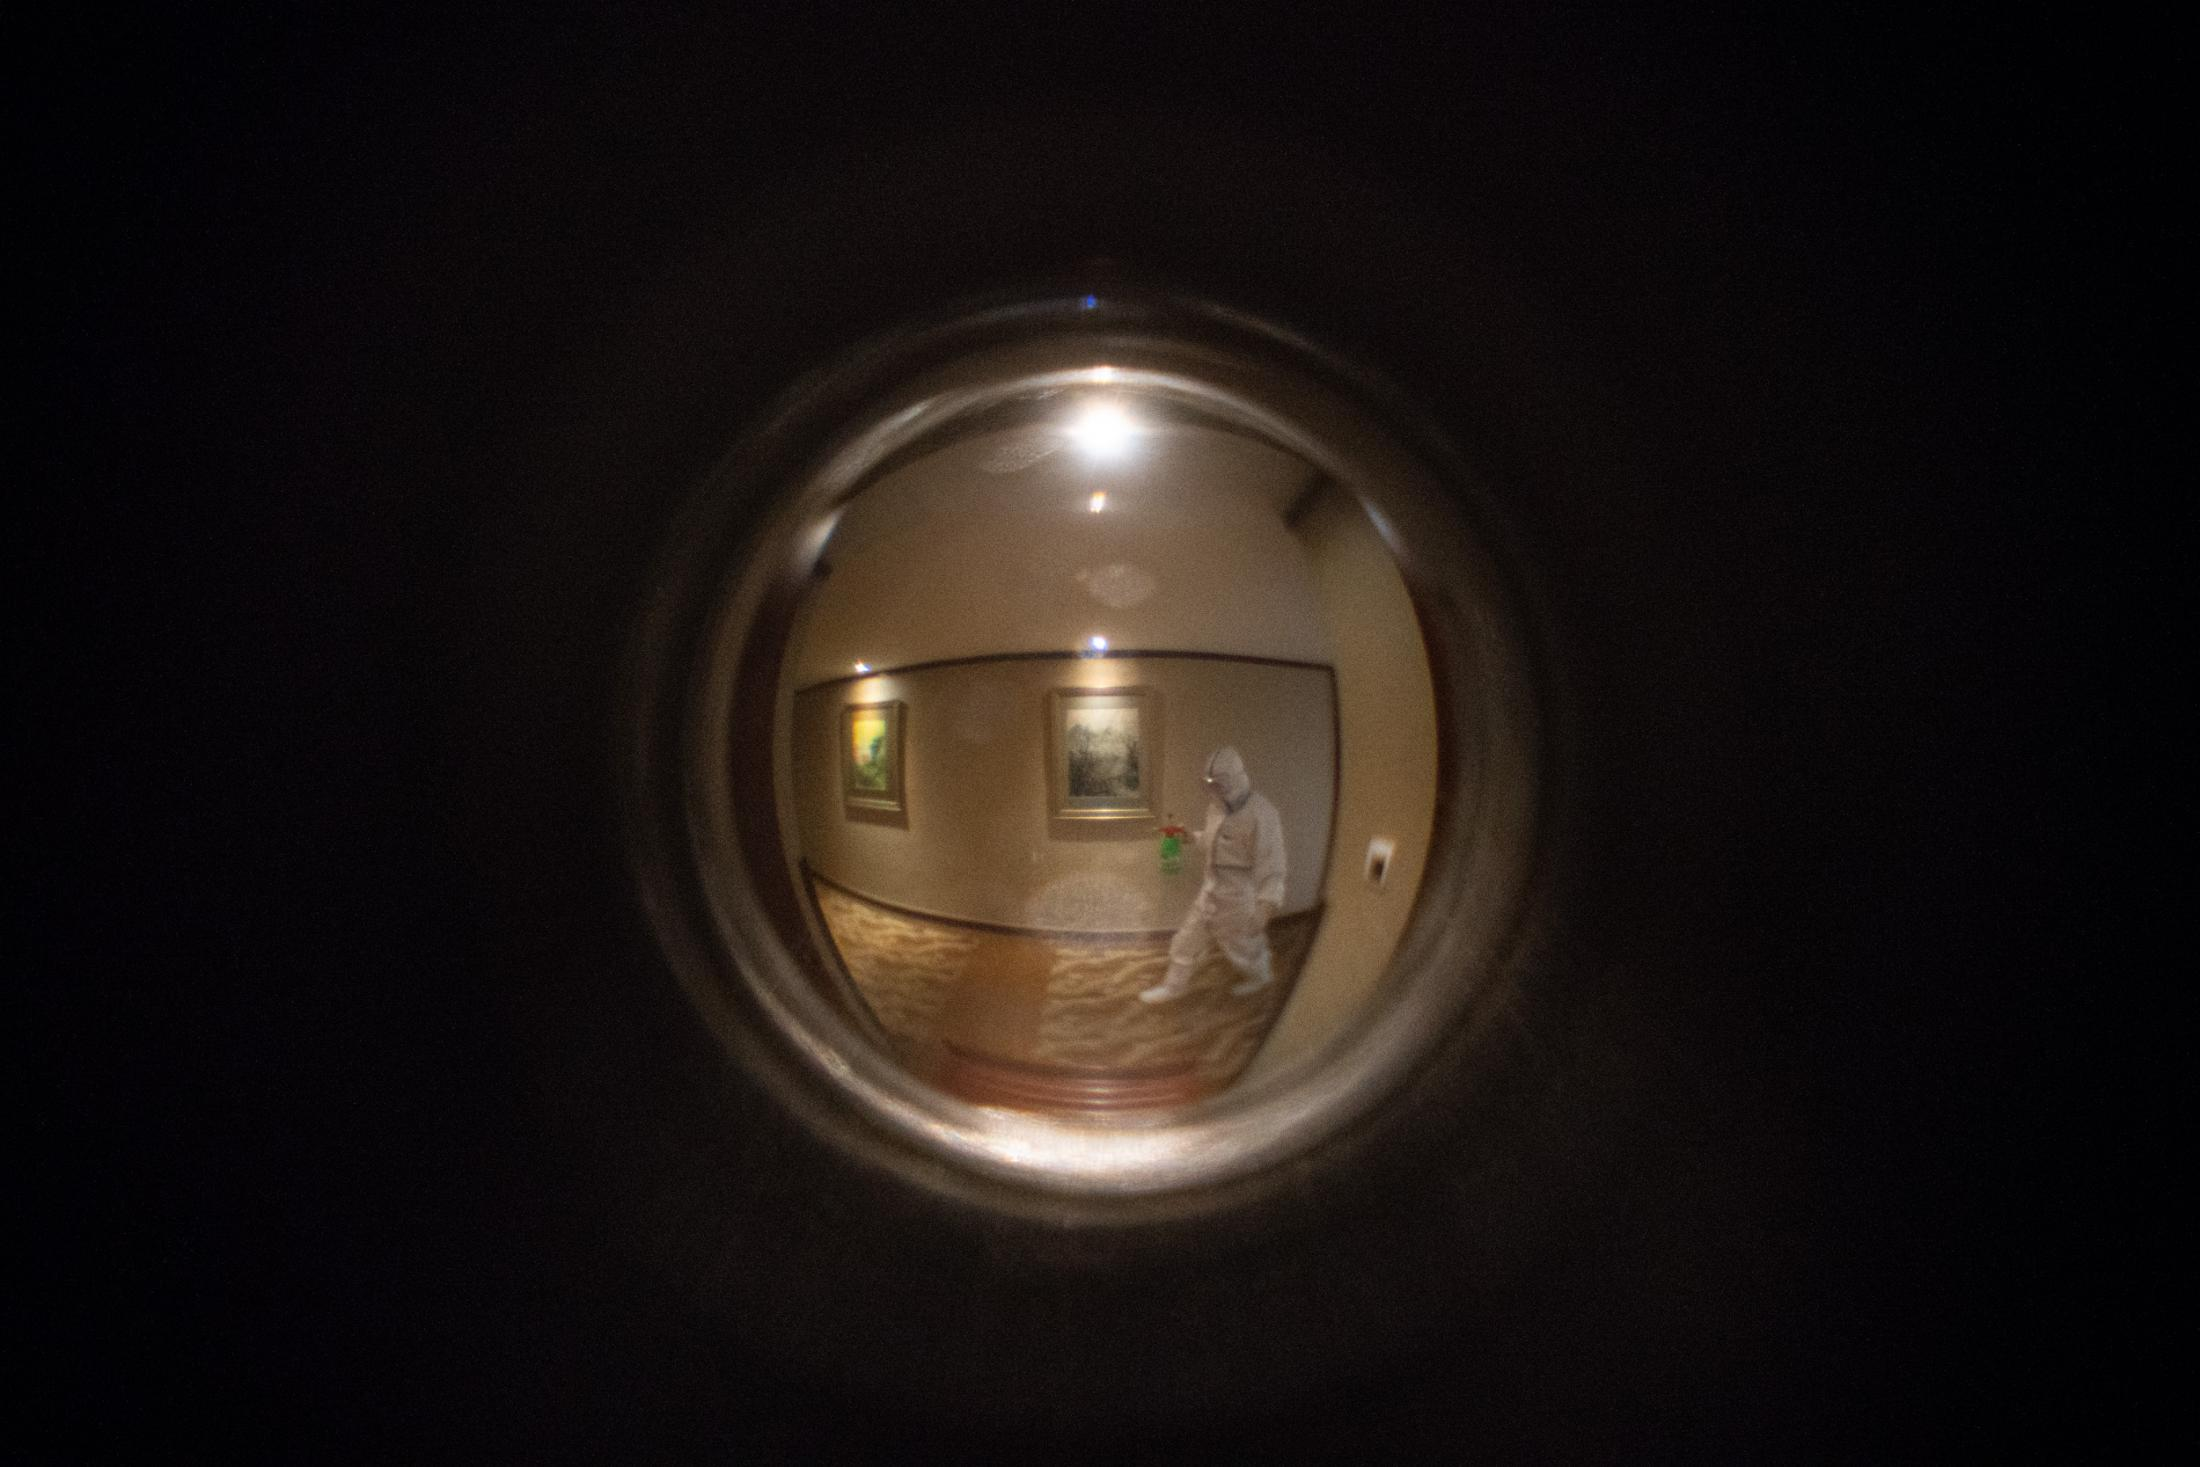 Seen through the peephole: a hotel staff walking with a spray bottle to disinfect the hallway.